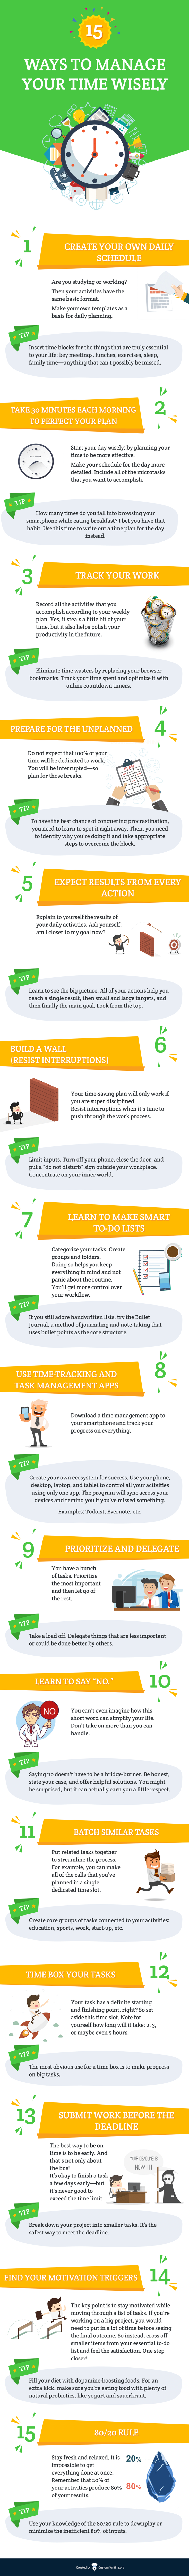 Infographic provided by Donna Norton. See the original infographic here in  Ways To Manage Your Time Wisely